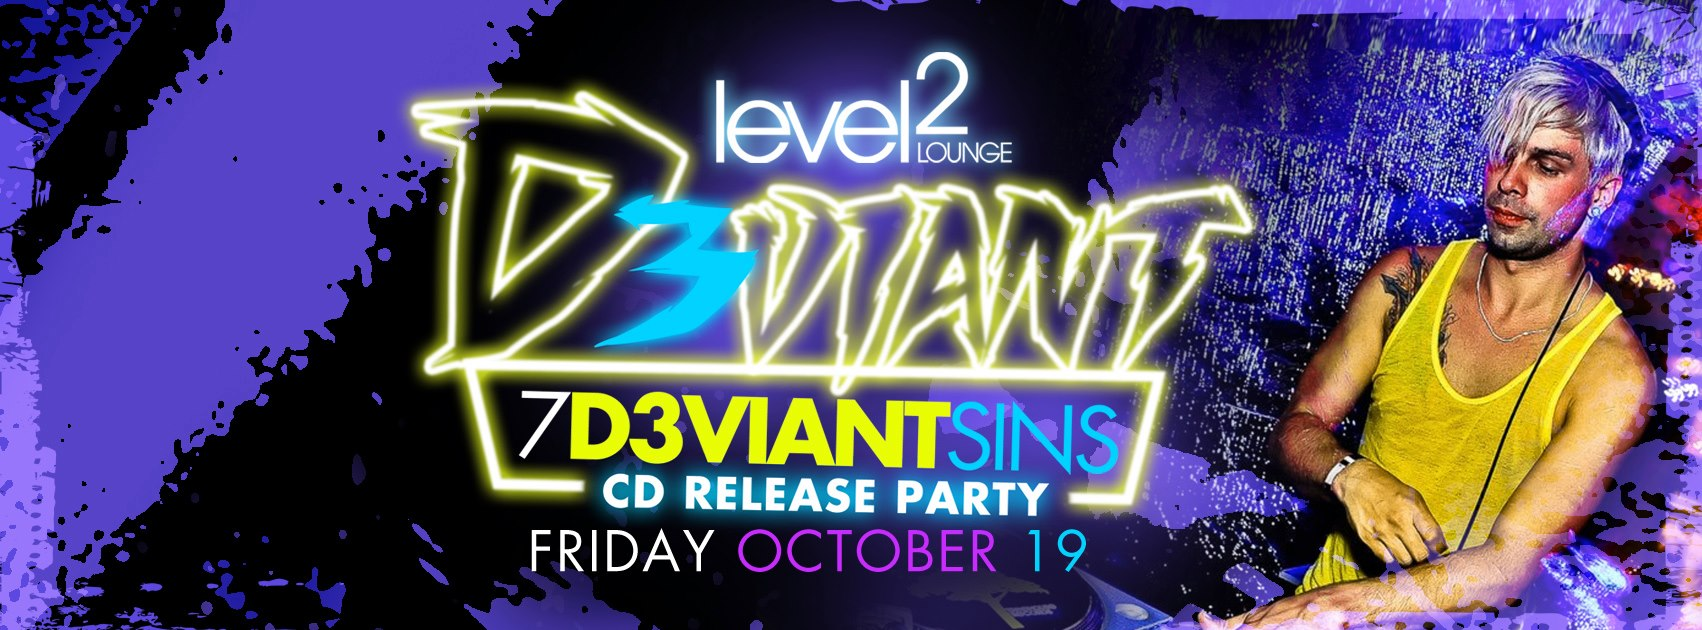 D3VIANT CD Release Party, October 19th at Level 2